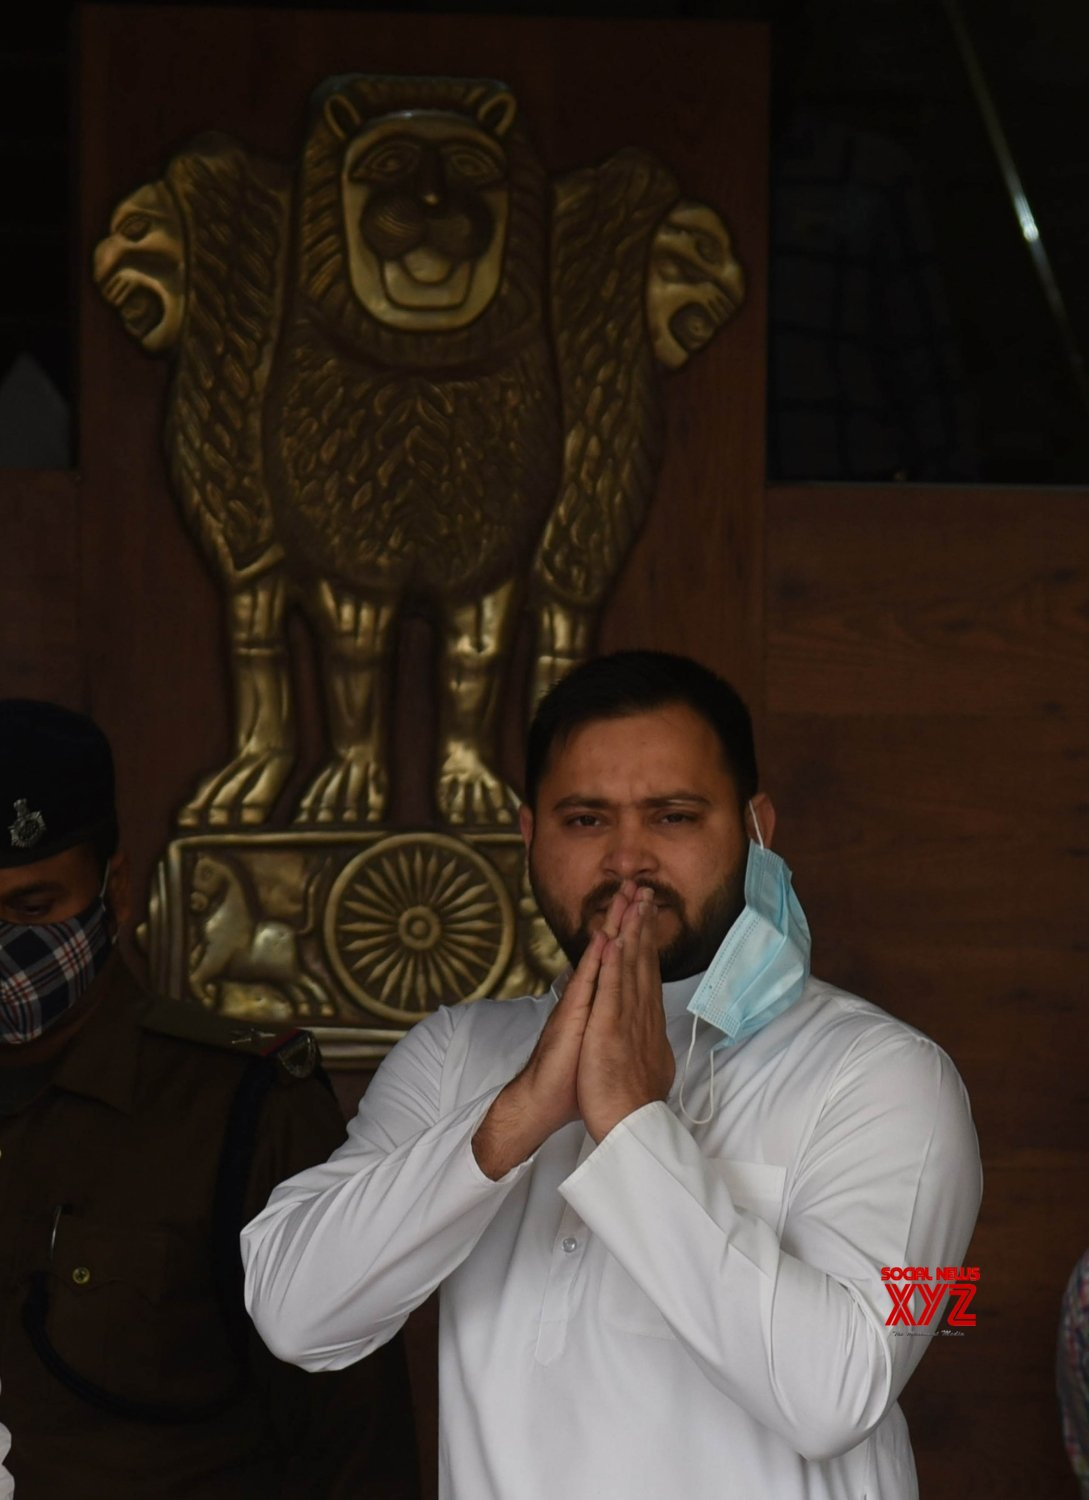 Bihar: RJD leader Tejashwi Yadav arrives during the ongoing Budget Session of Bihar Assembly in Patna on Tuesday 23rd, 2021 #Gallery